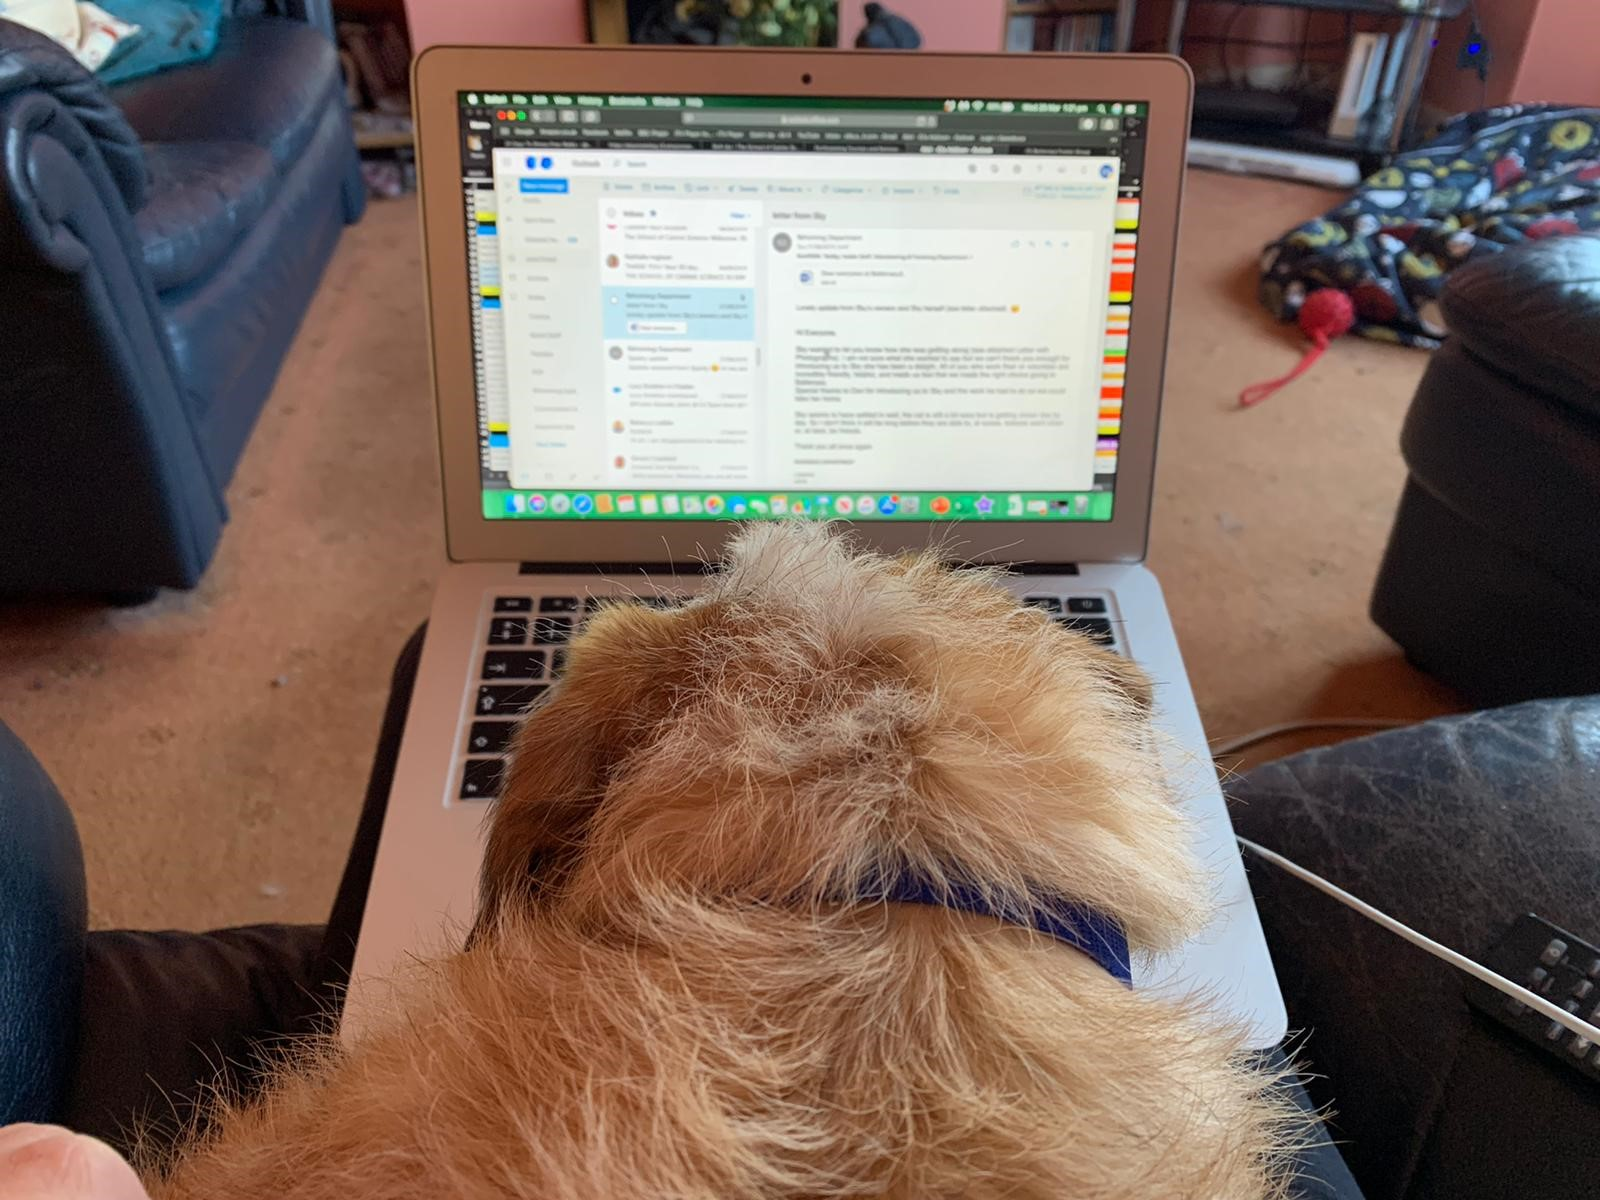 Brisco the dog helping Ella read her emails on her laptop